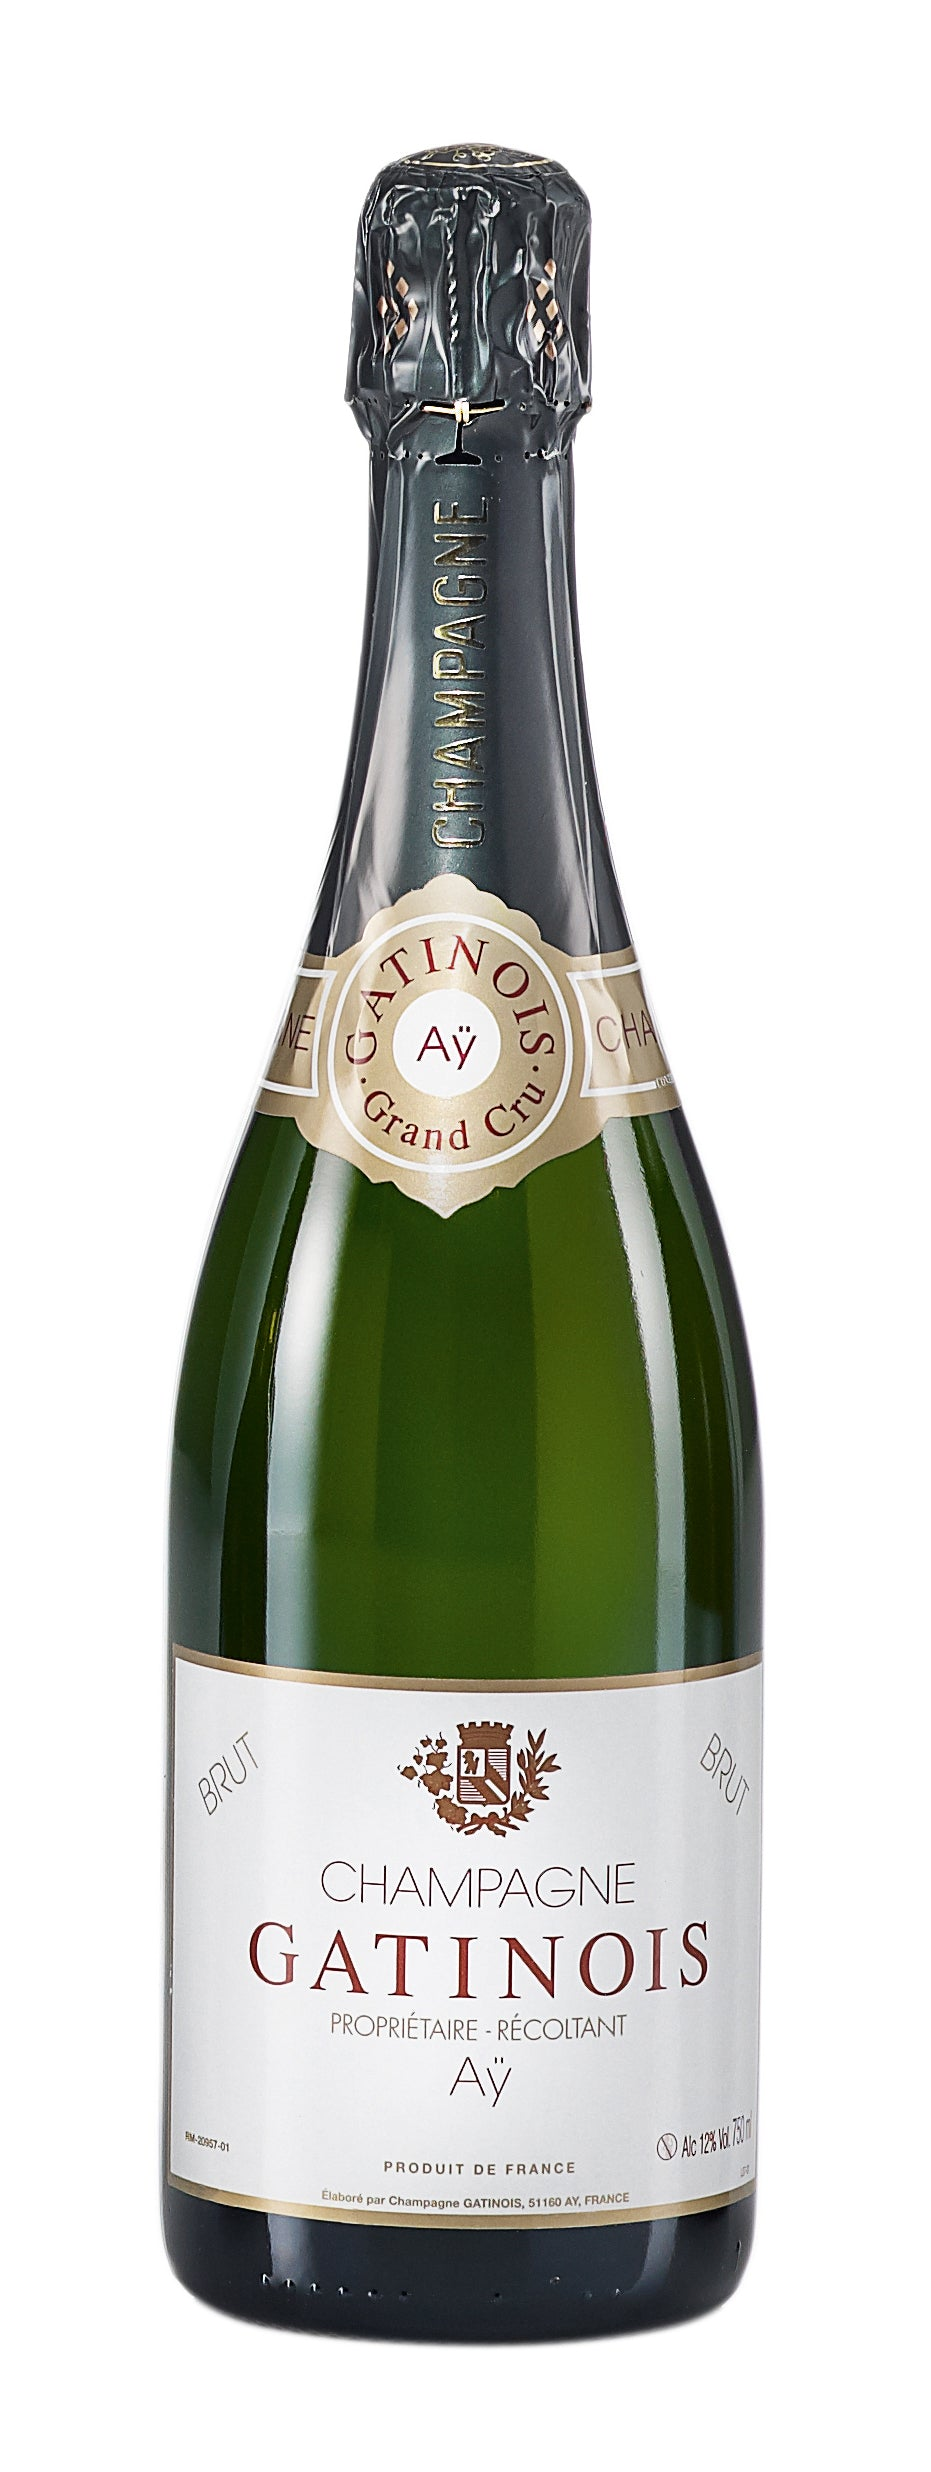 Gatinois Champagne, Grand Cru Aÿ, Brut NV - Case of 6